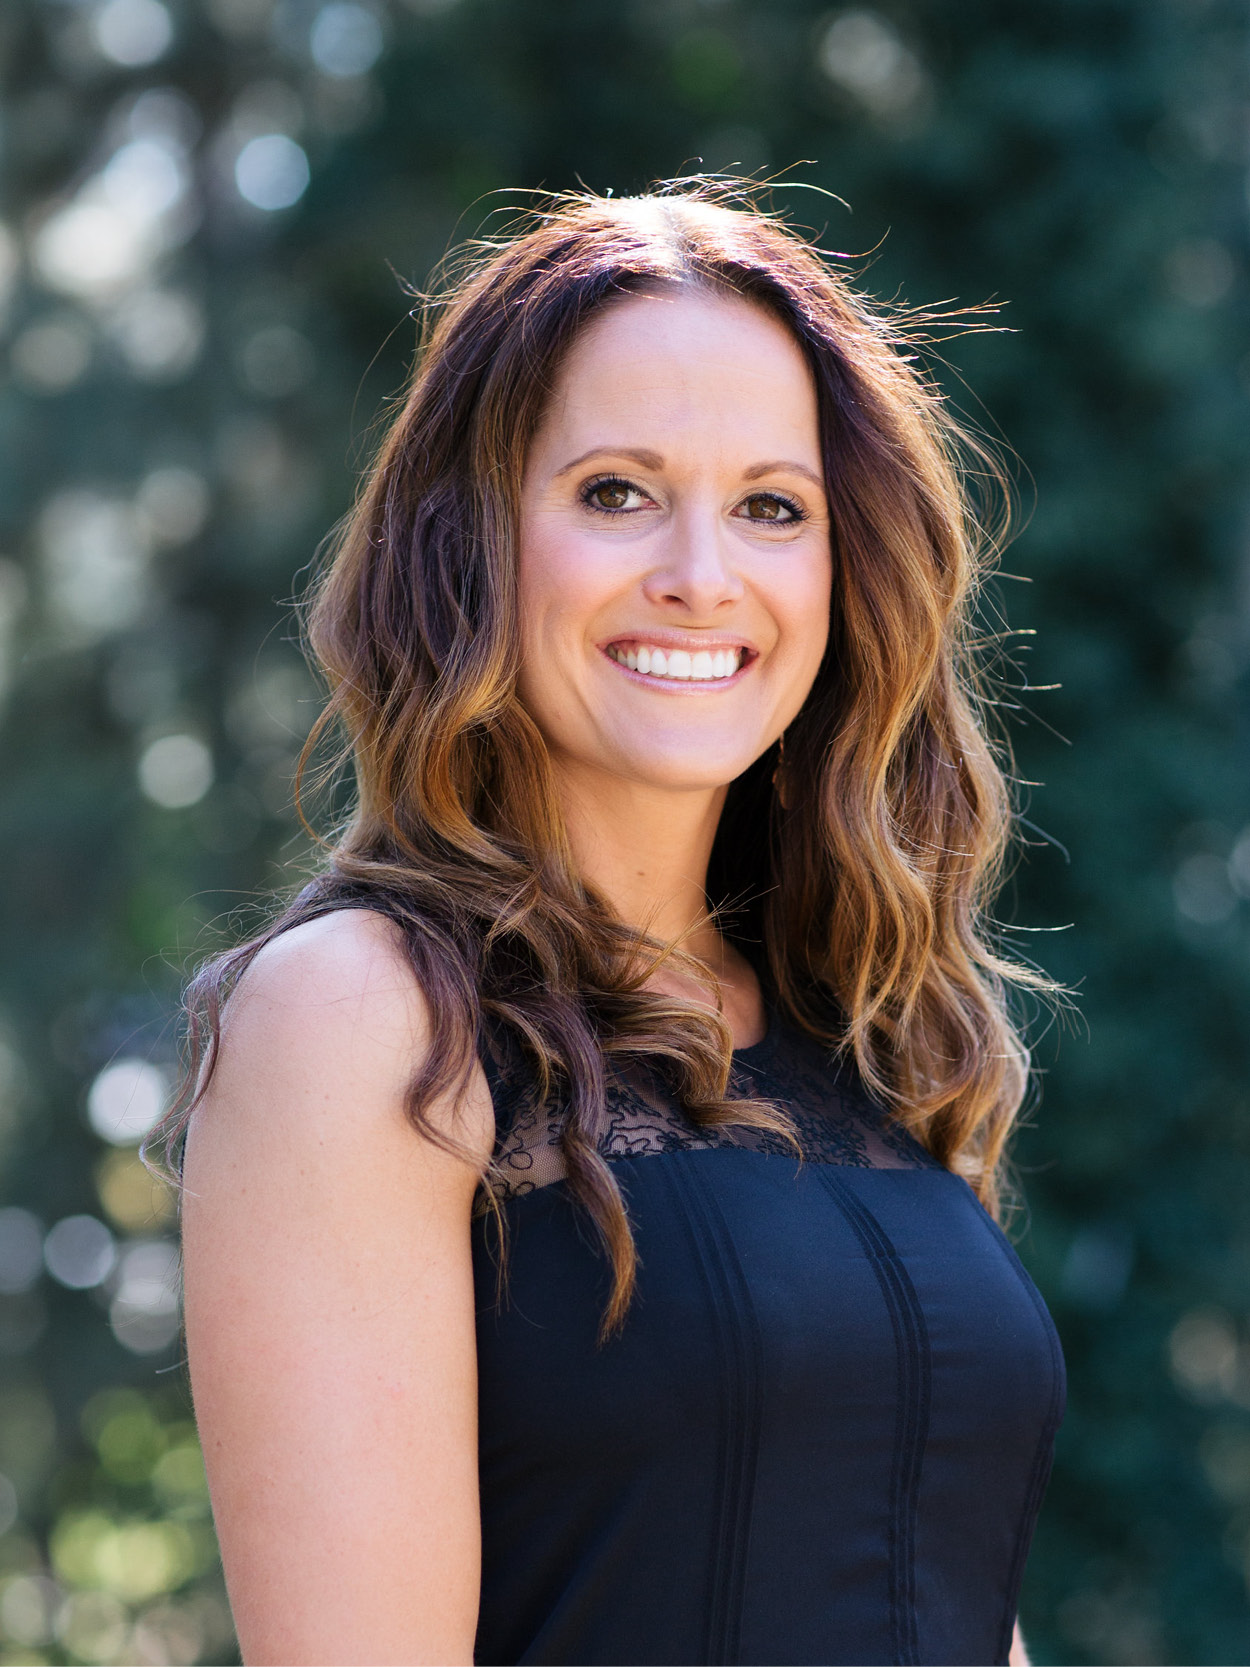 Meet Erin at The Dental Wellness Center of Grass Valley.